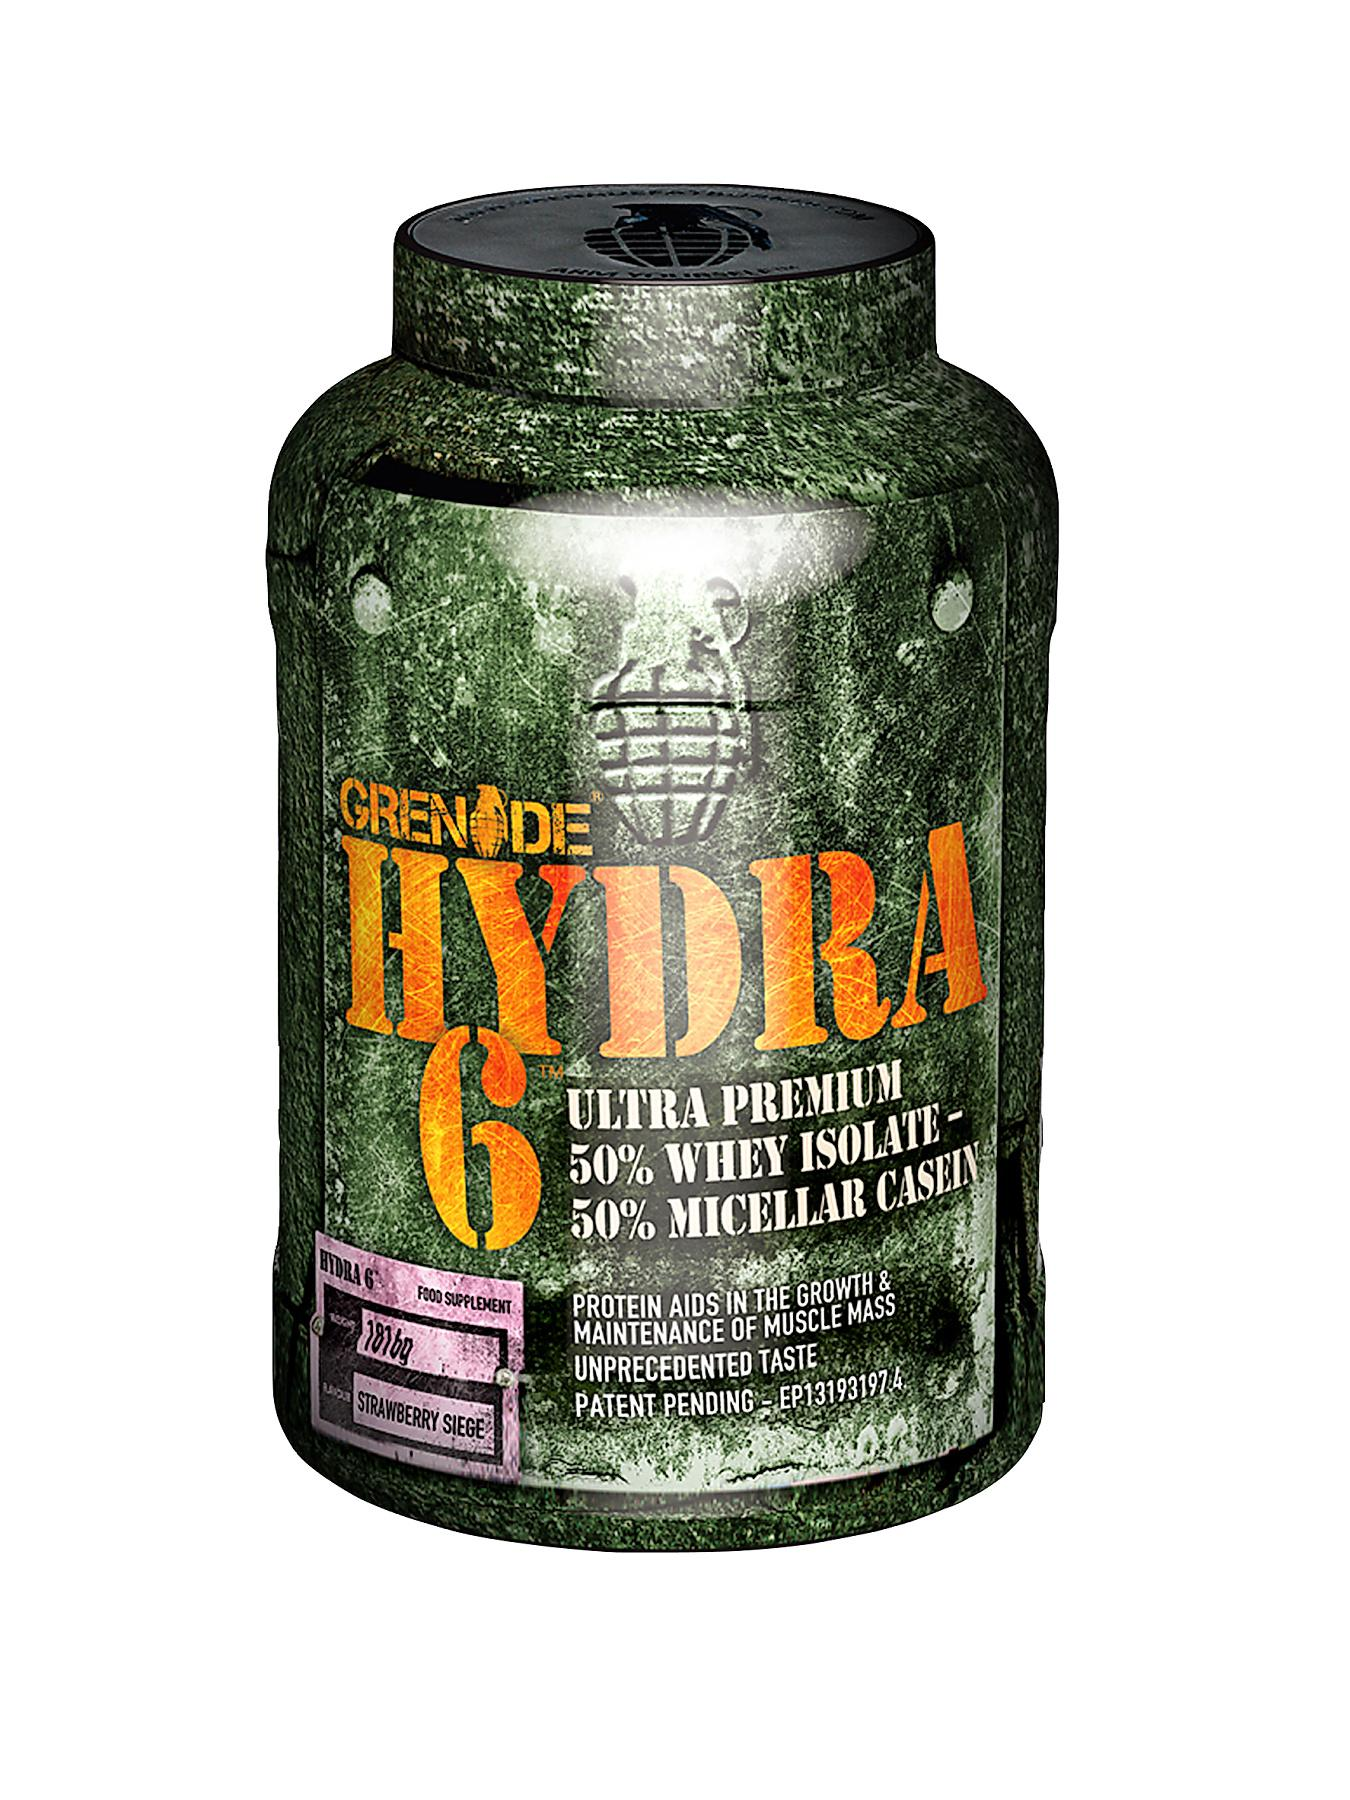 GRENADE Hydra Protein Powder 1.8kg Strawberry Siege